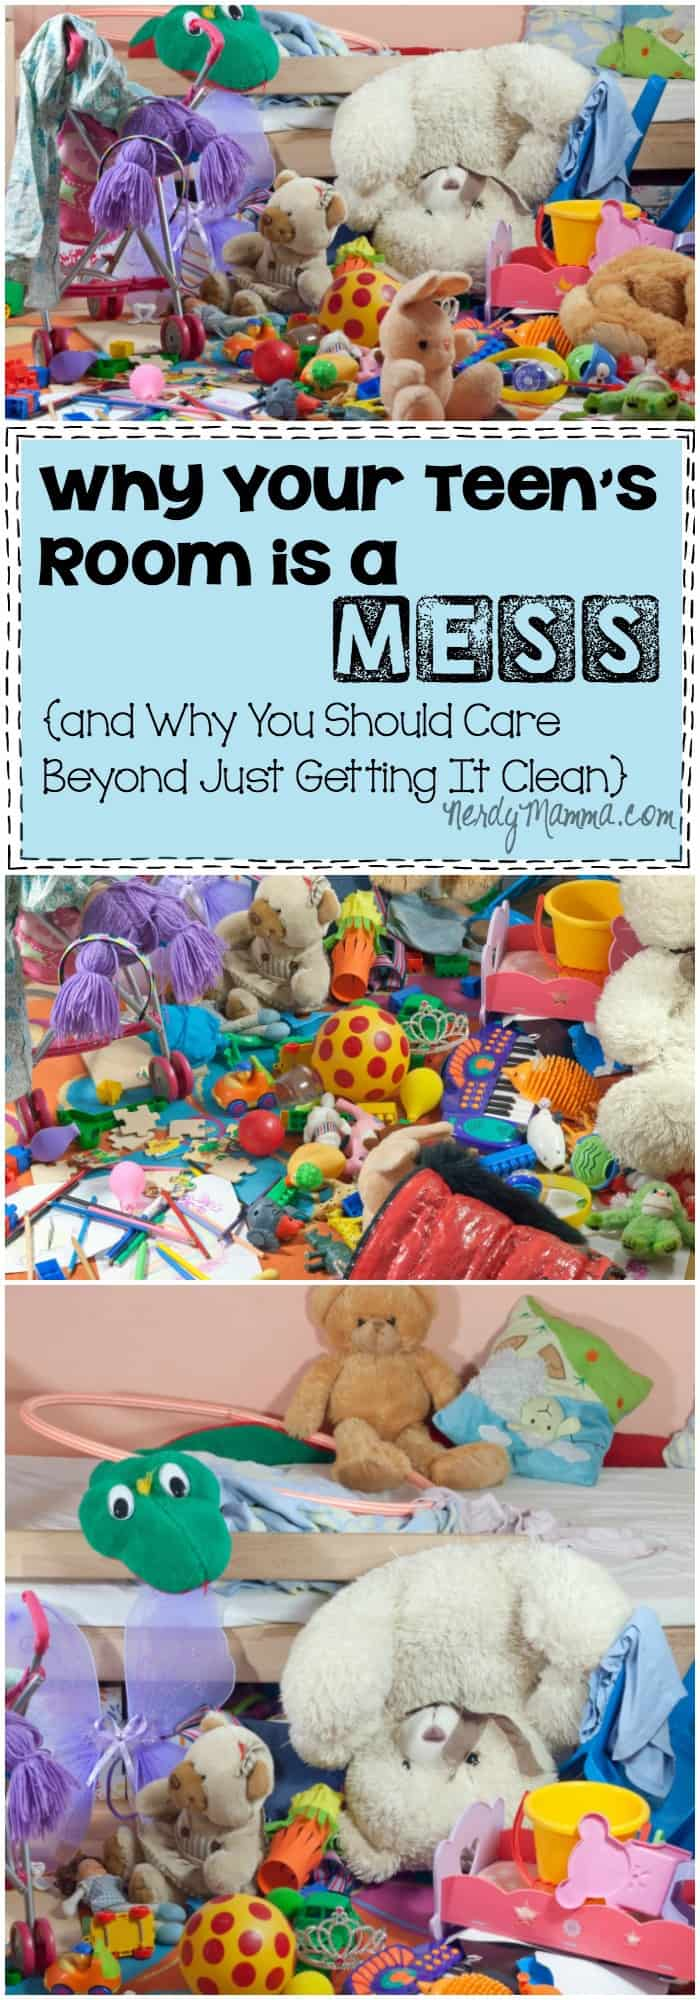 This insight into Why Your Teen's Room is a Mess makes me think about my kid and how they feel about themselves. i never, ever thought about it this way before. Brilliant.